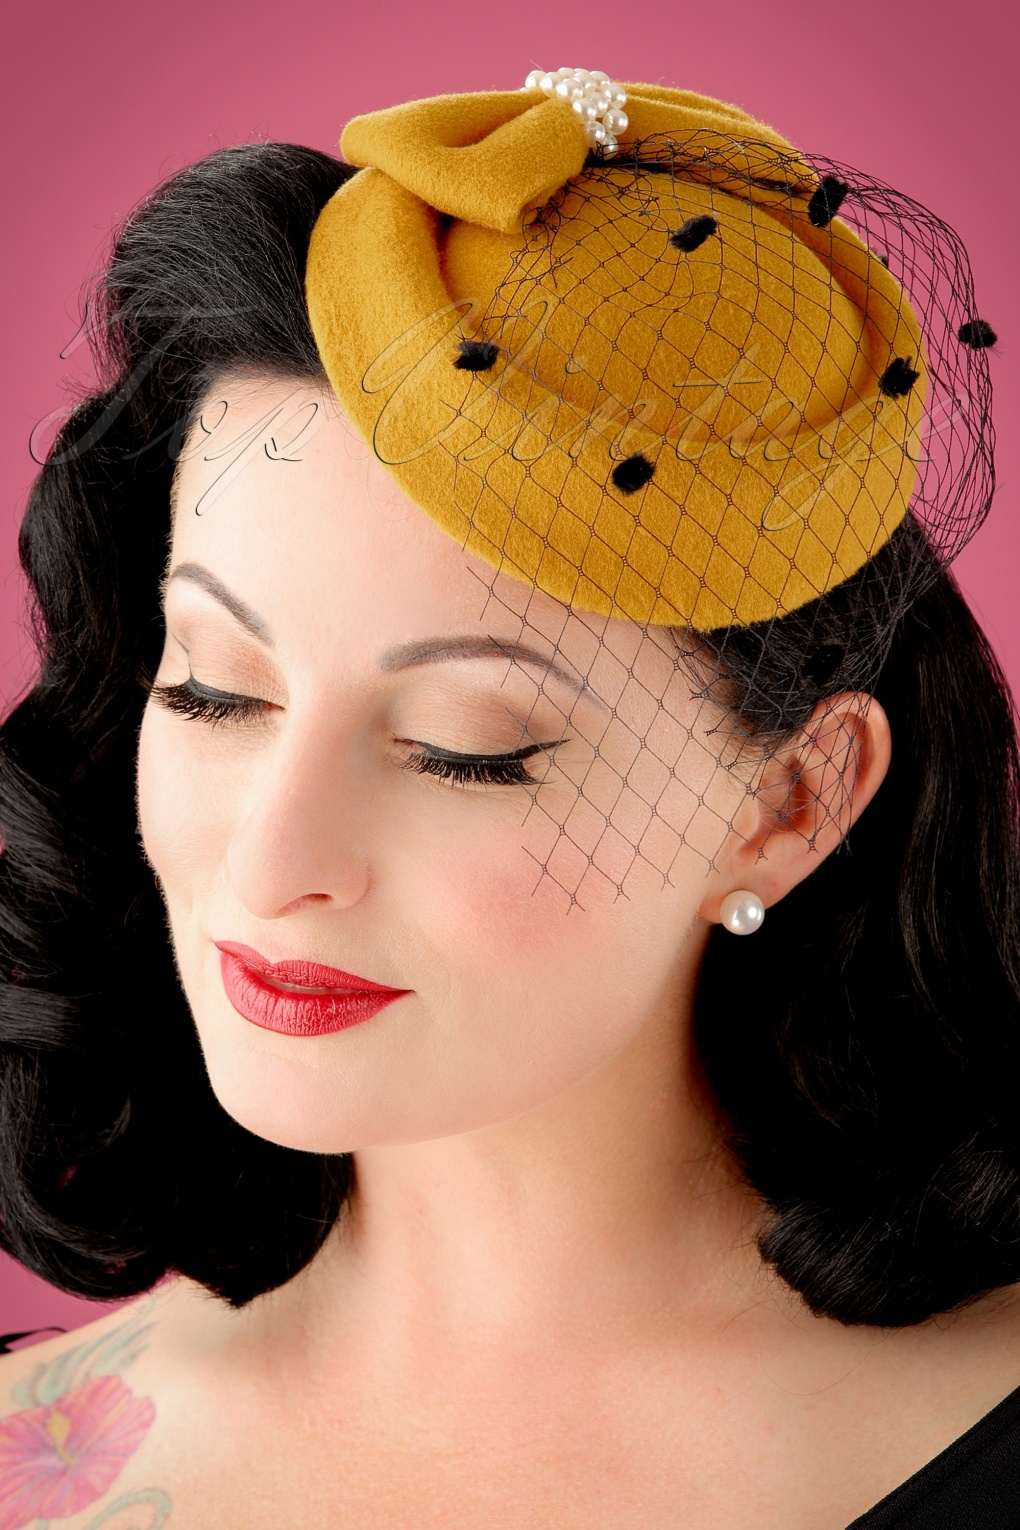 Women's Vintage Hats | Old Fashioned Hats | Retro Hats 50s Judy Hat in Mustard £17.48 AT vintagedancer.com